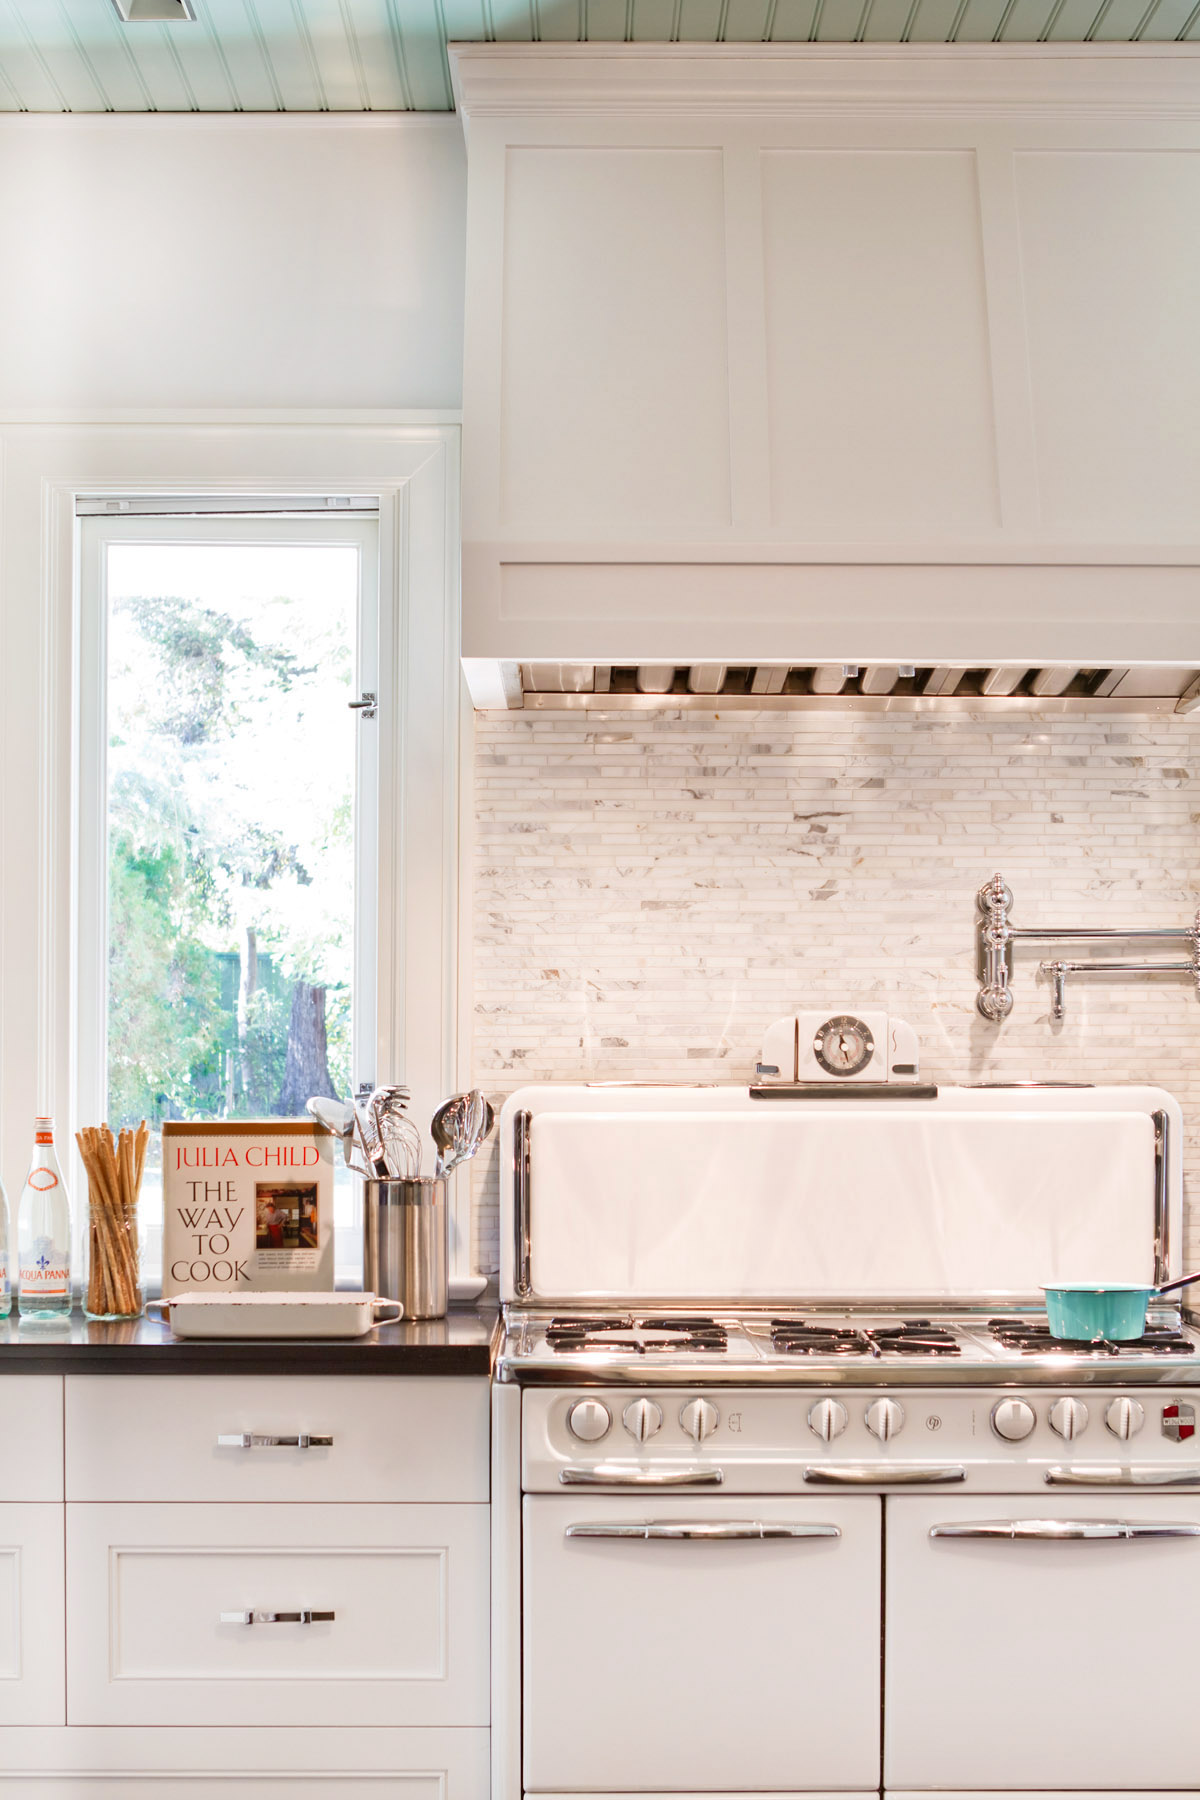 Complete Renovation Of Kitchen In A Historically Significant Colonial In  Pasadena, CA. Kitchen Features A Vintage Wedgewood Stove From The 50u0027s,  Cork Floor, ...